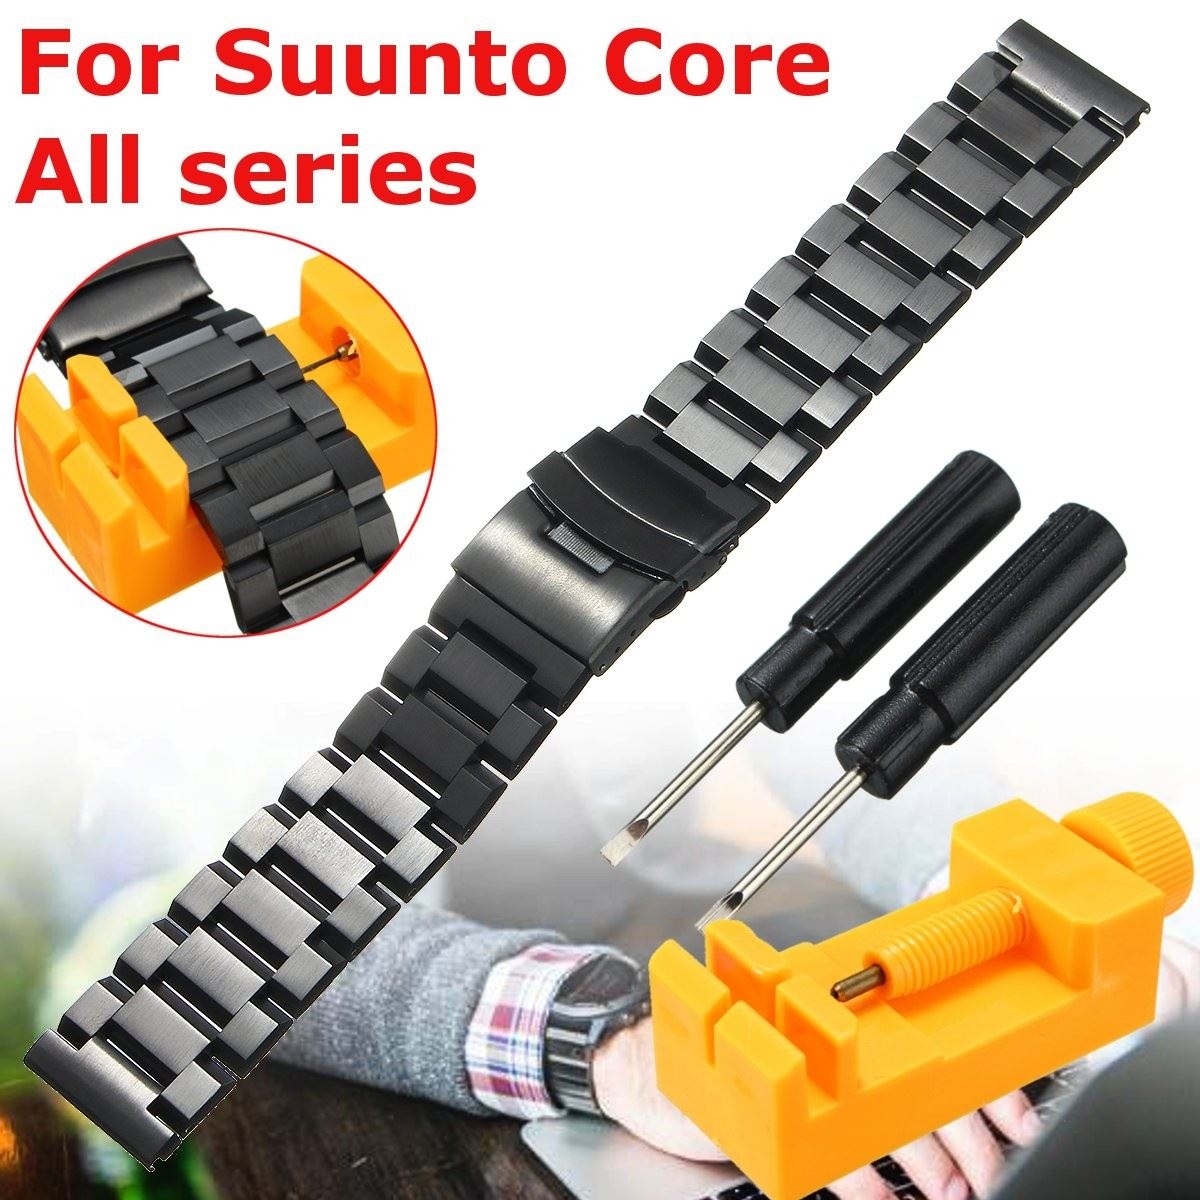 Stainless Steel Watchbands Strap 24mm Double Flip Lock Buckle For Suunto Core Silver Black Metal Watch Bracelets+Free Tools suunto core brushed steel brown leather